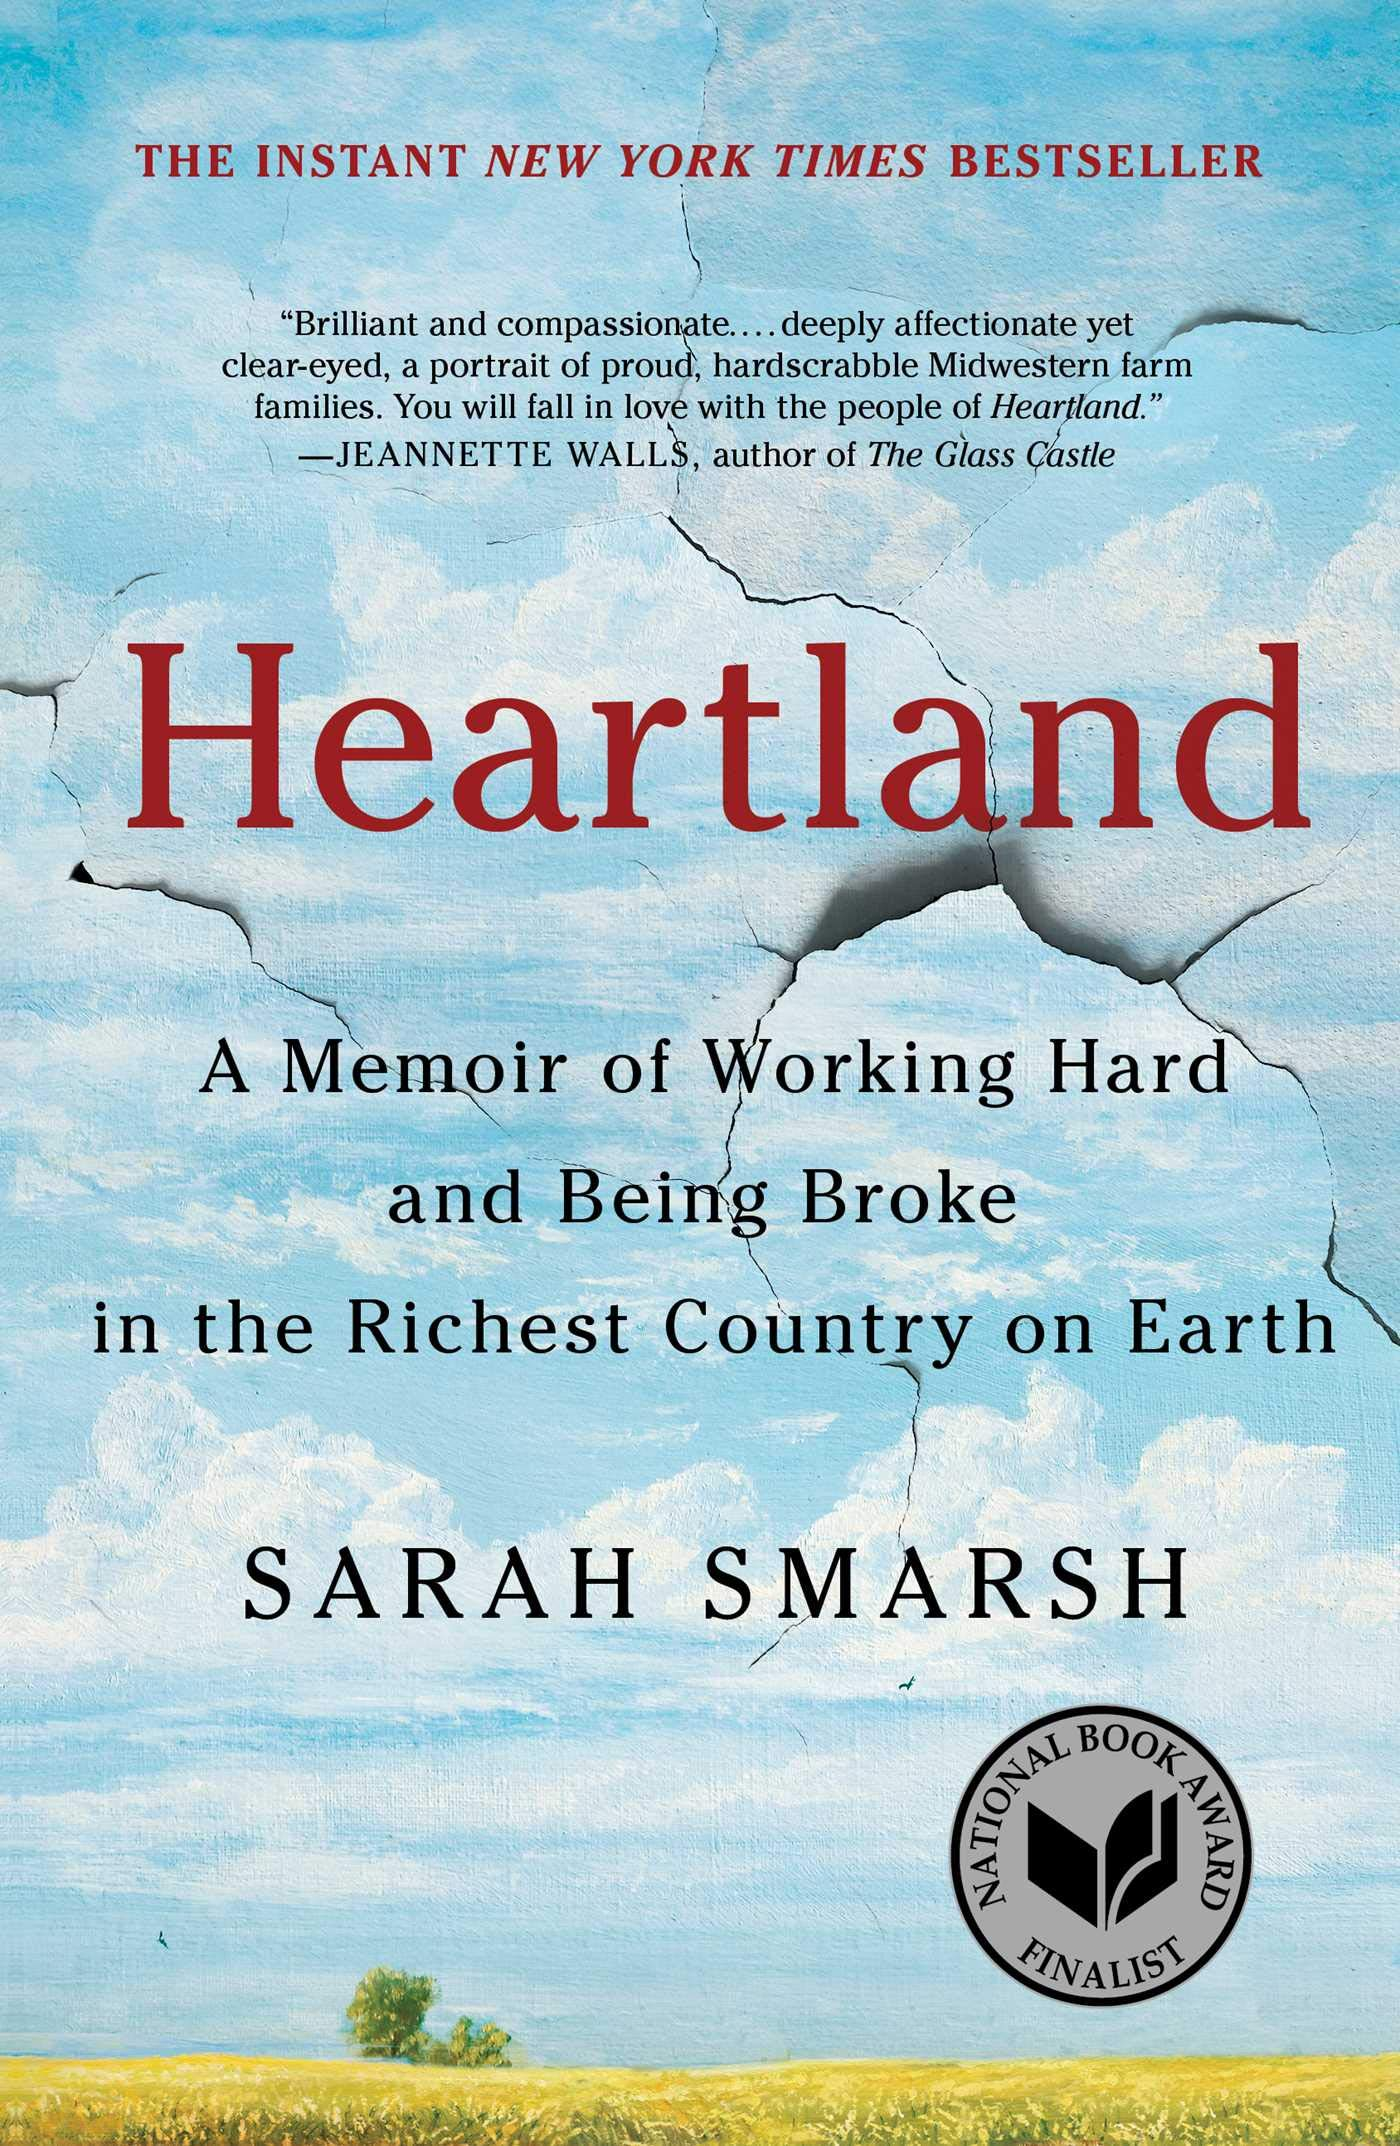 cover art for the book Heartland Sarah Smarsh